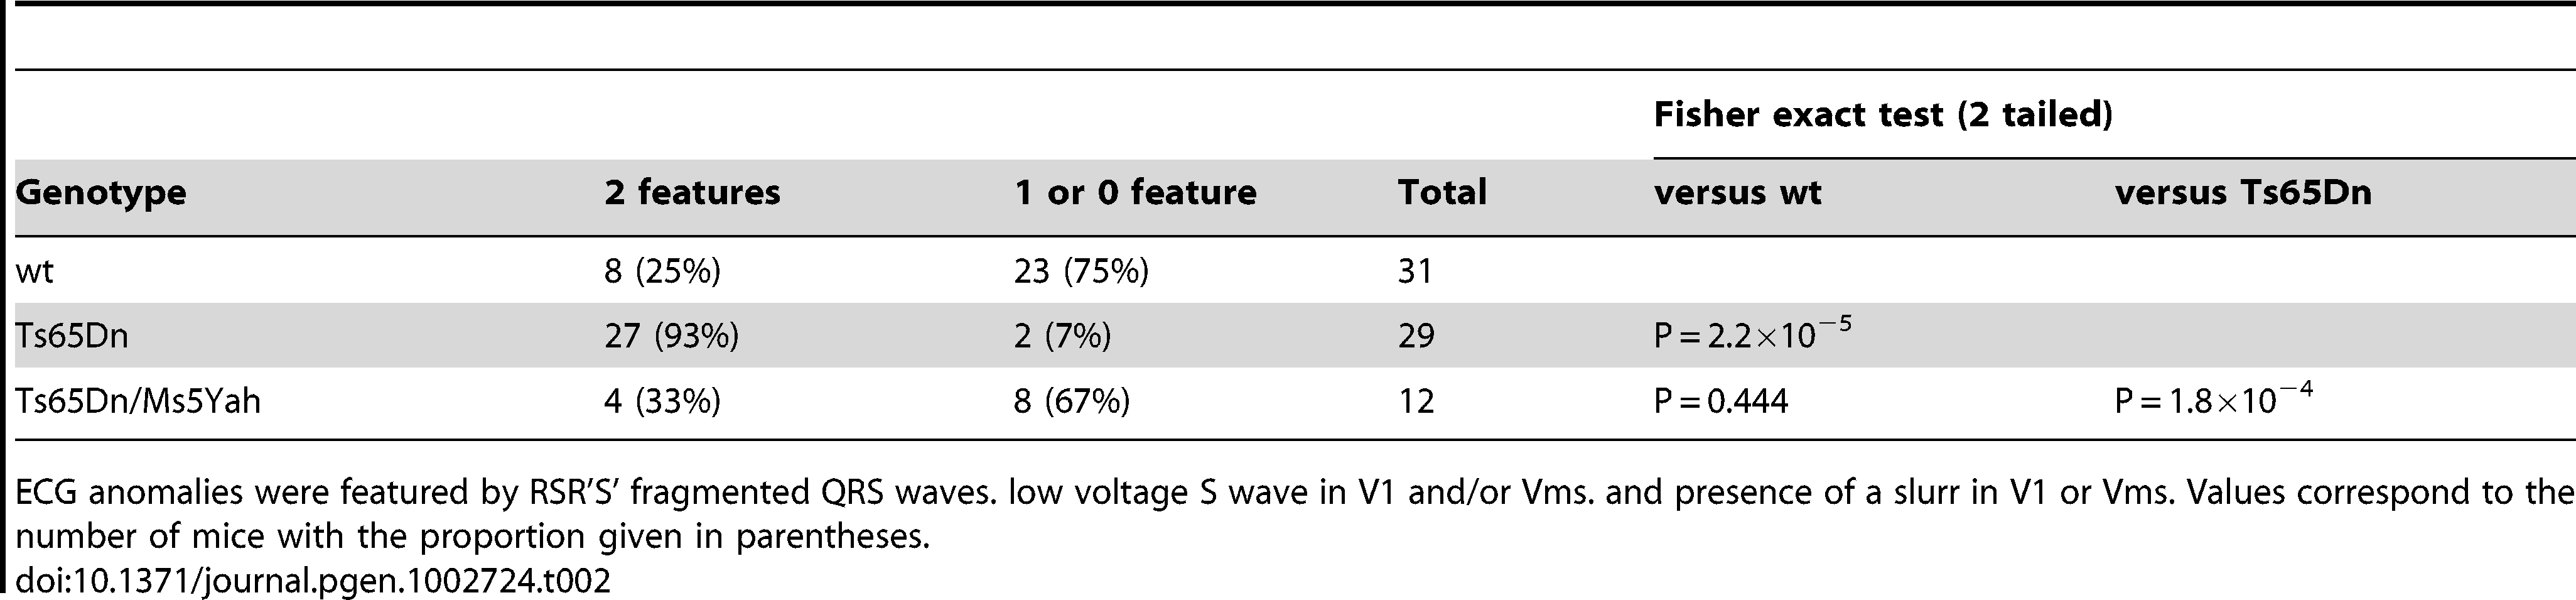 Comparison of ECG anomalies in the different mouse lines.